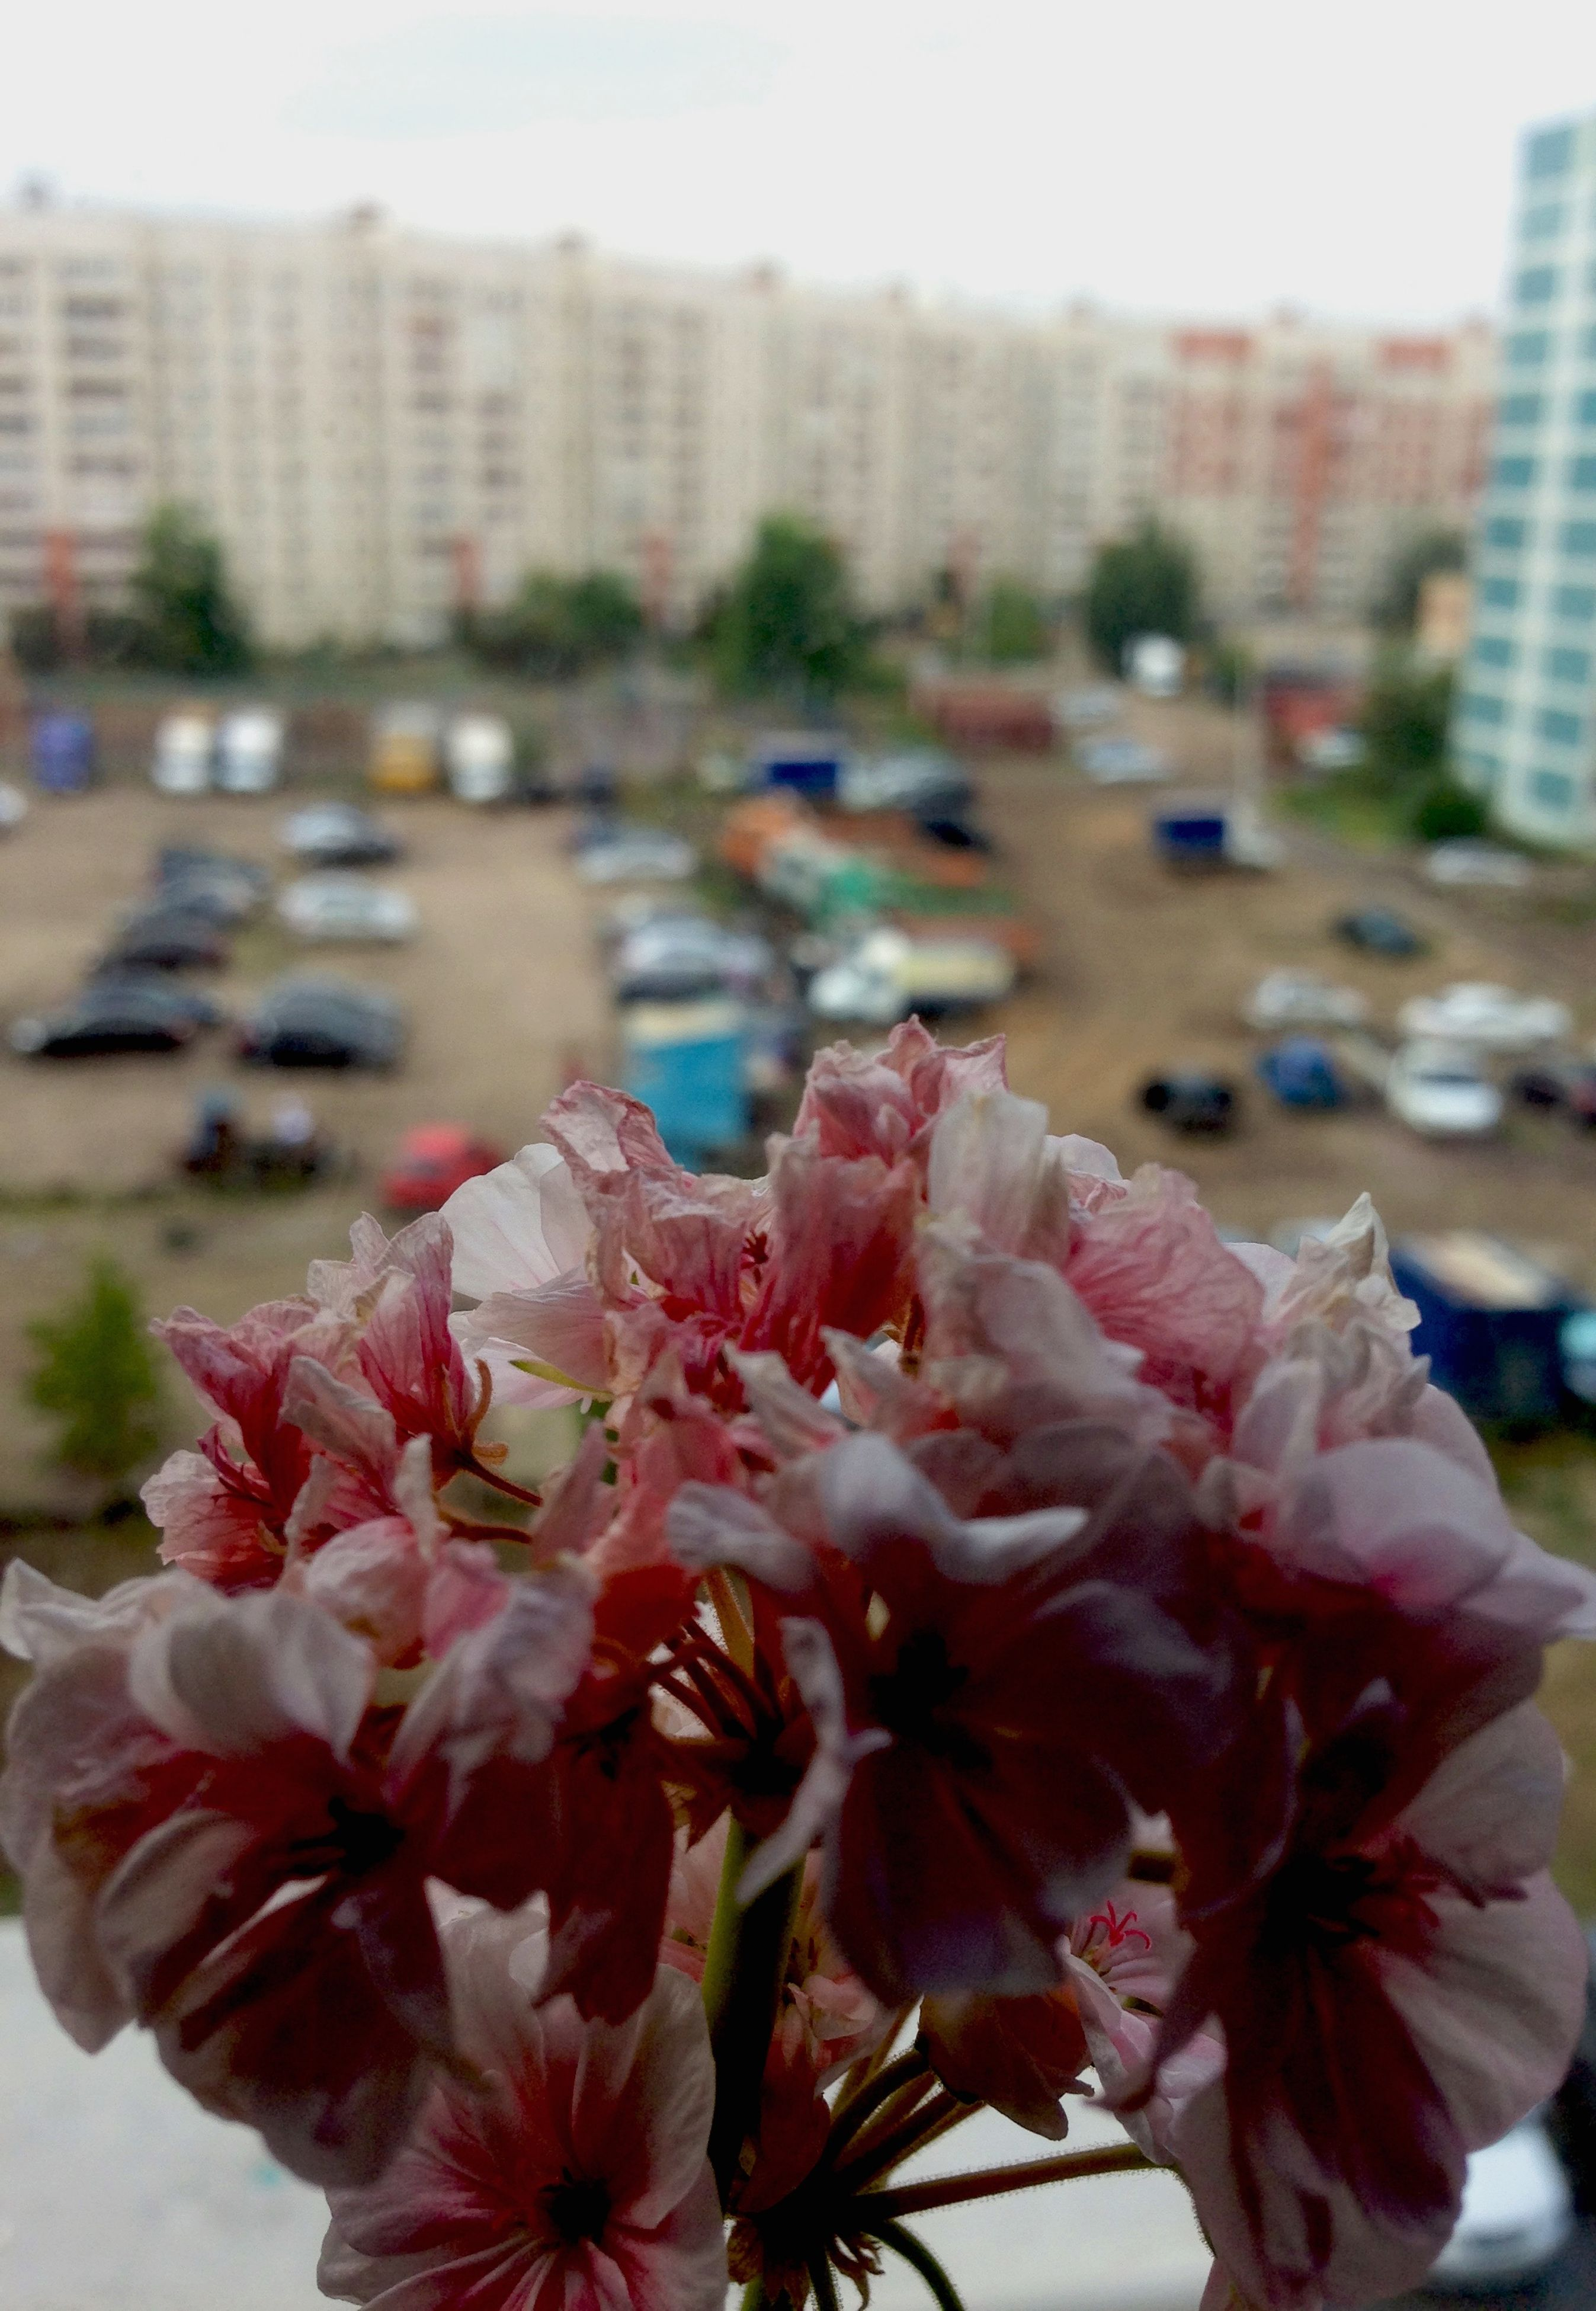 flower, focus on foreground, fragility, petal, freshness, close-up, building exterior, growth, pink color, flower head, nature, beauty in nature, blooming, day, built structure, outdoors, city, plant, architecture, park - man made space